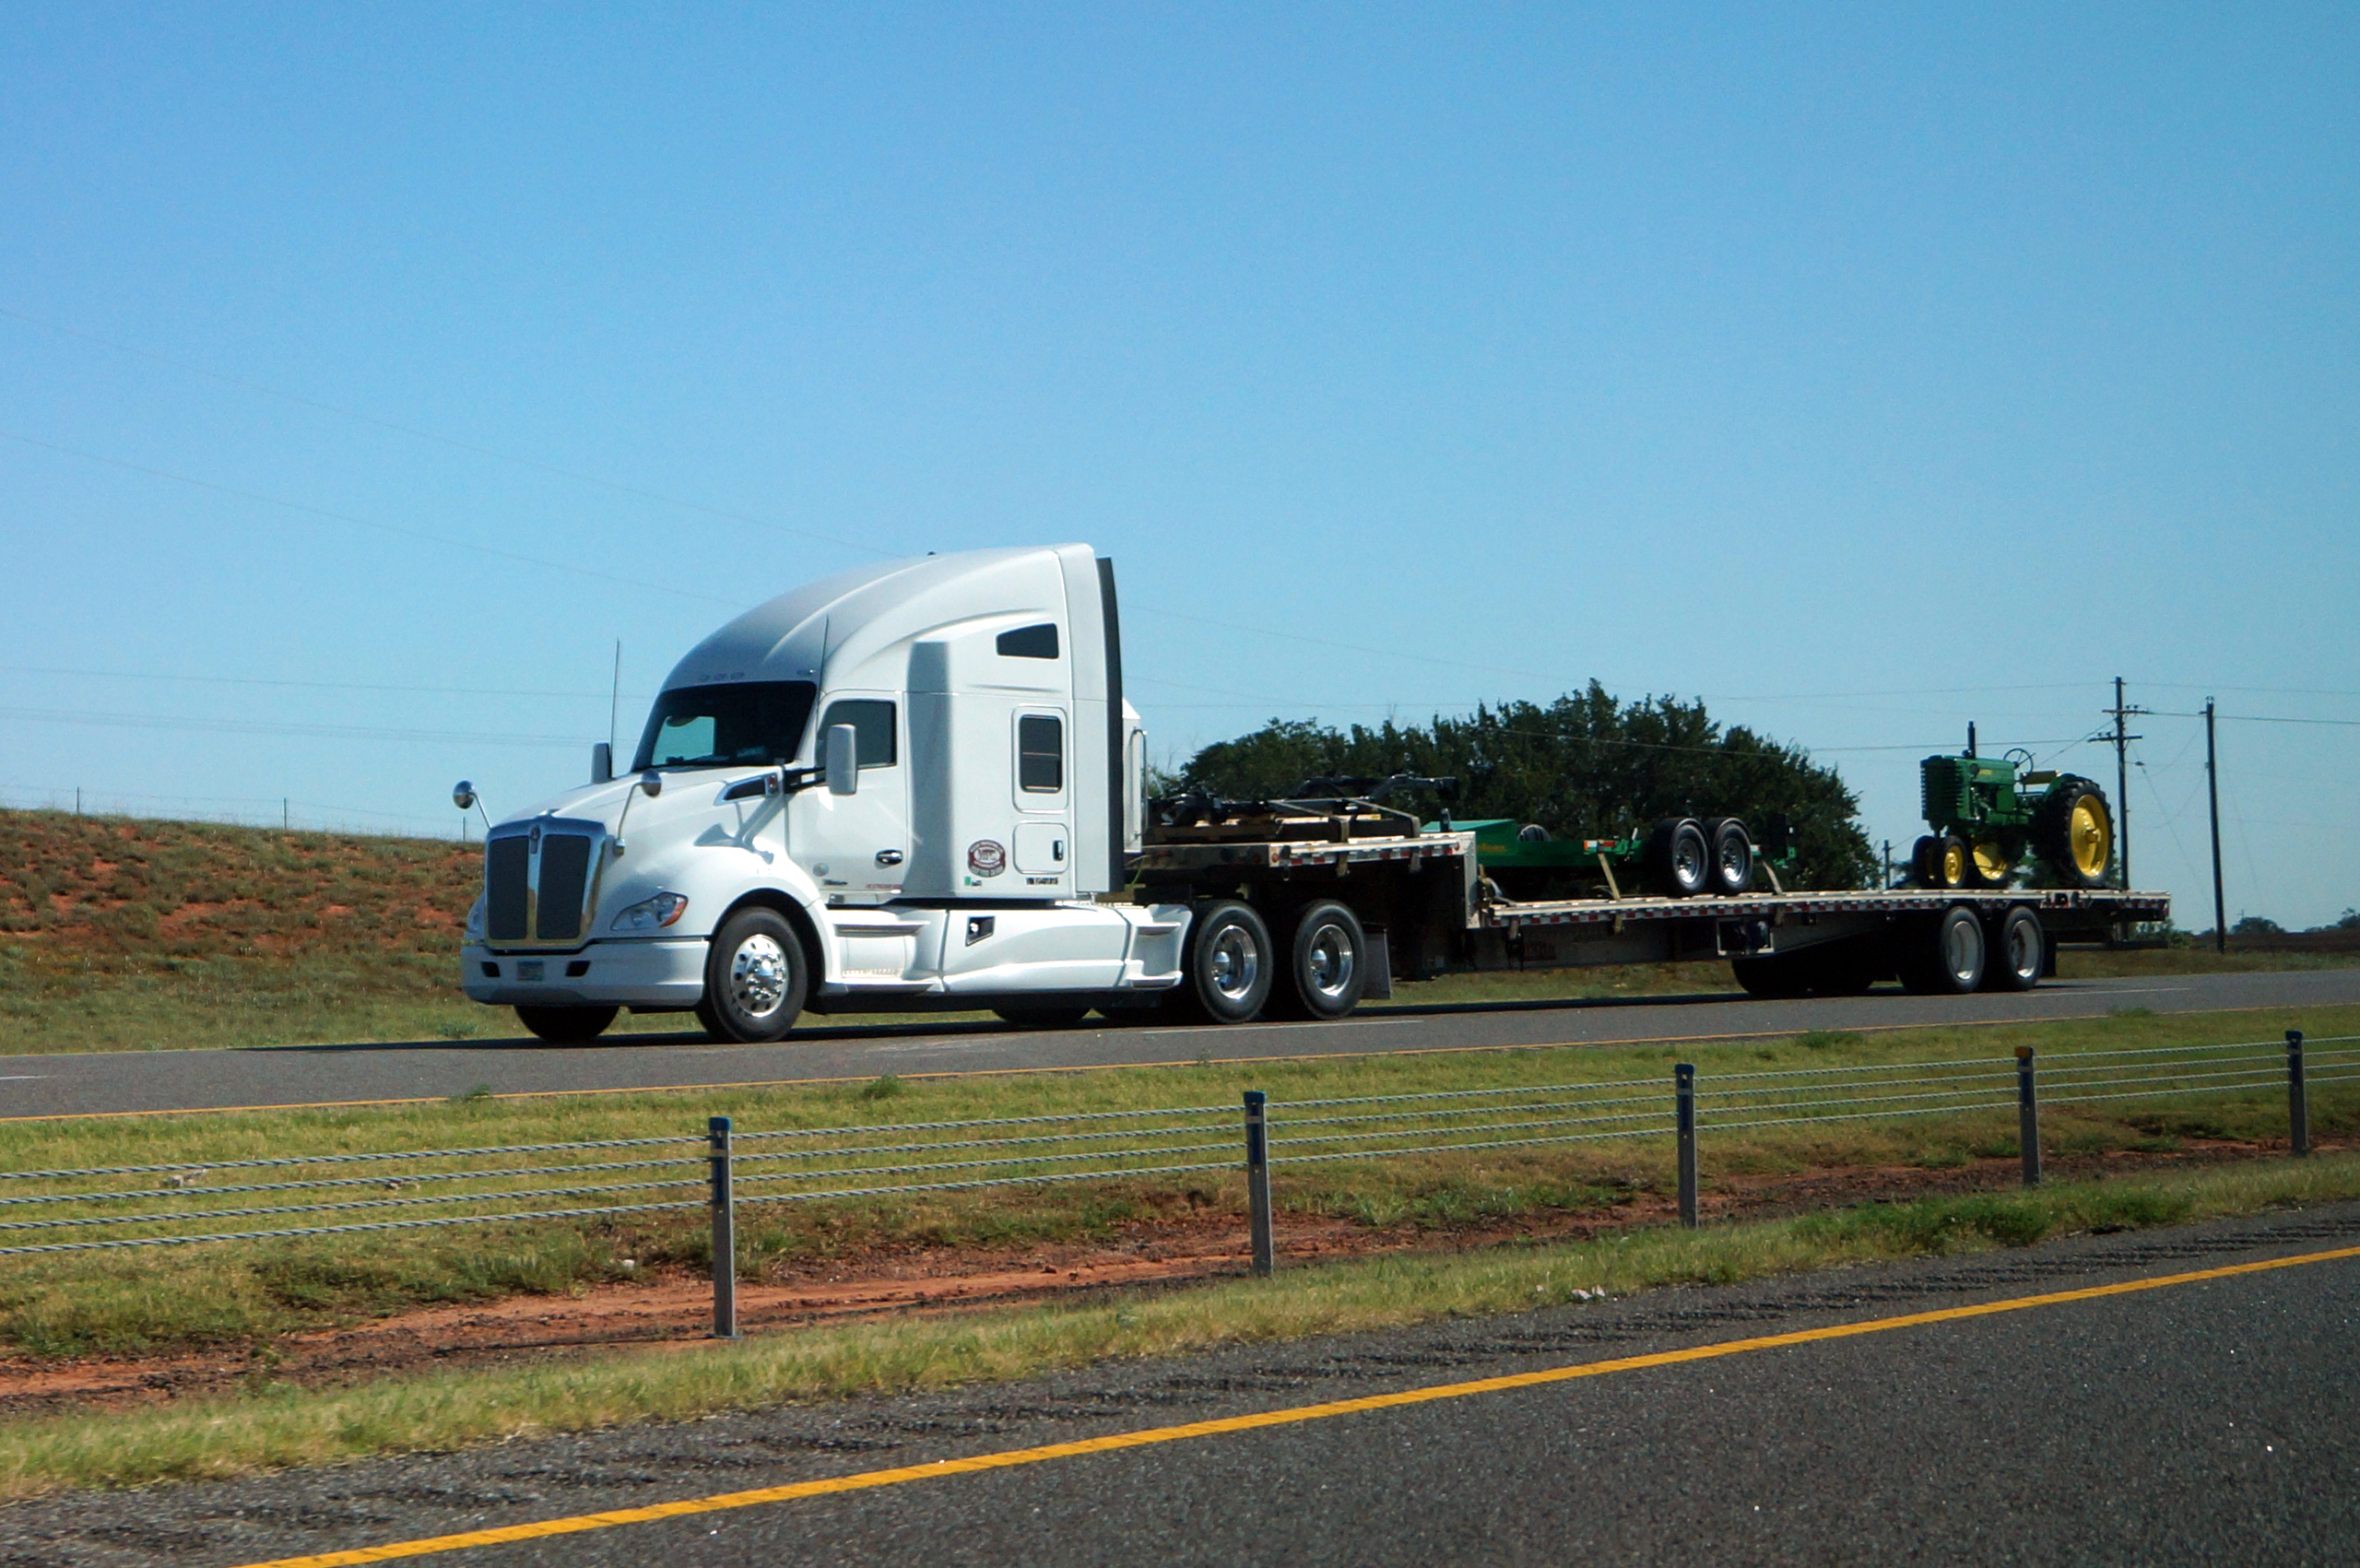 Amazing I-40 Amarillo,tx ➙ Oklahoma City, Ok - Pt. 5 for Luxury Ashley Furniture Trucking